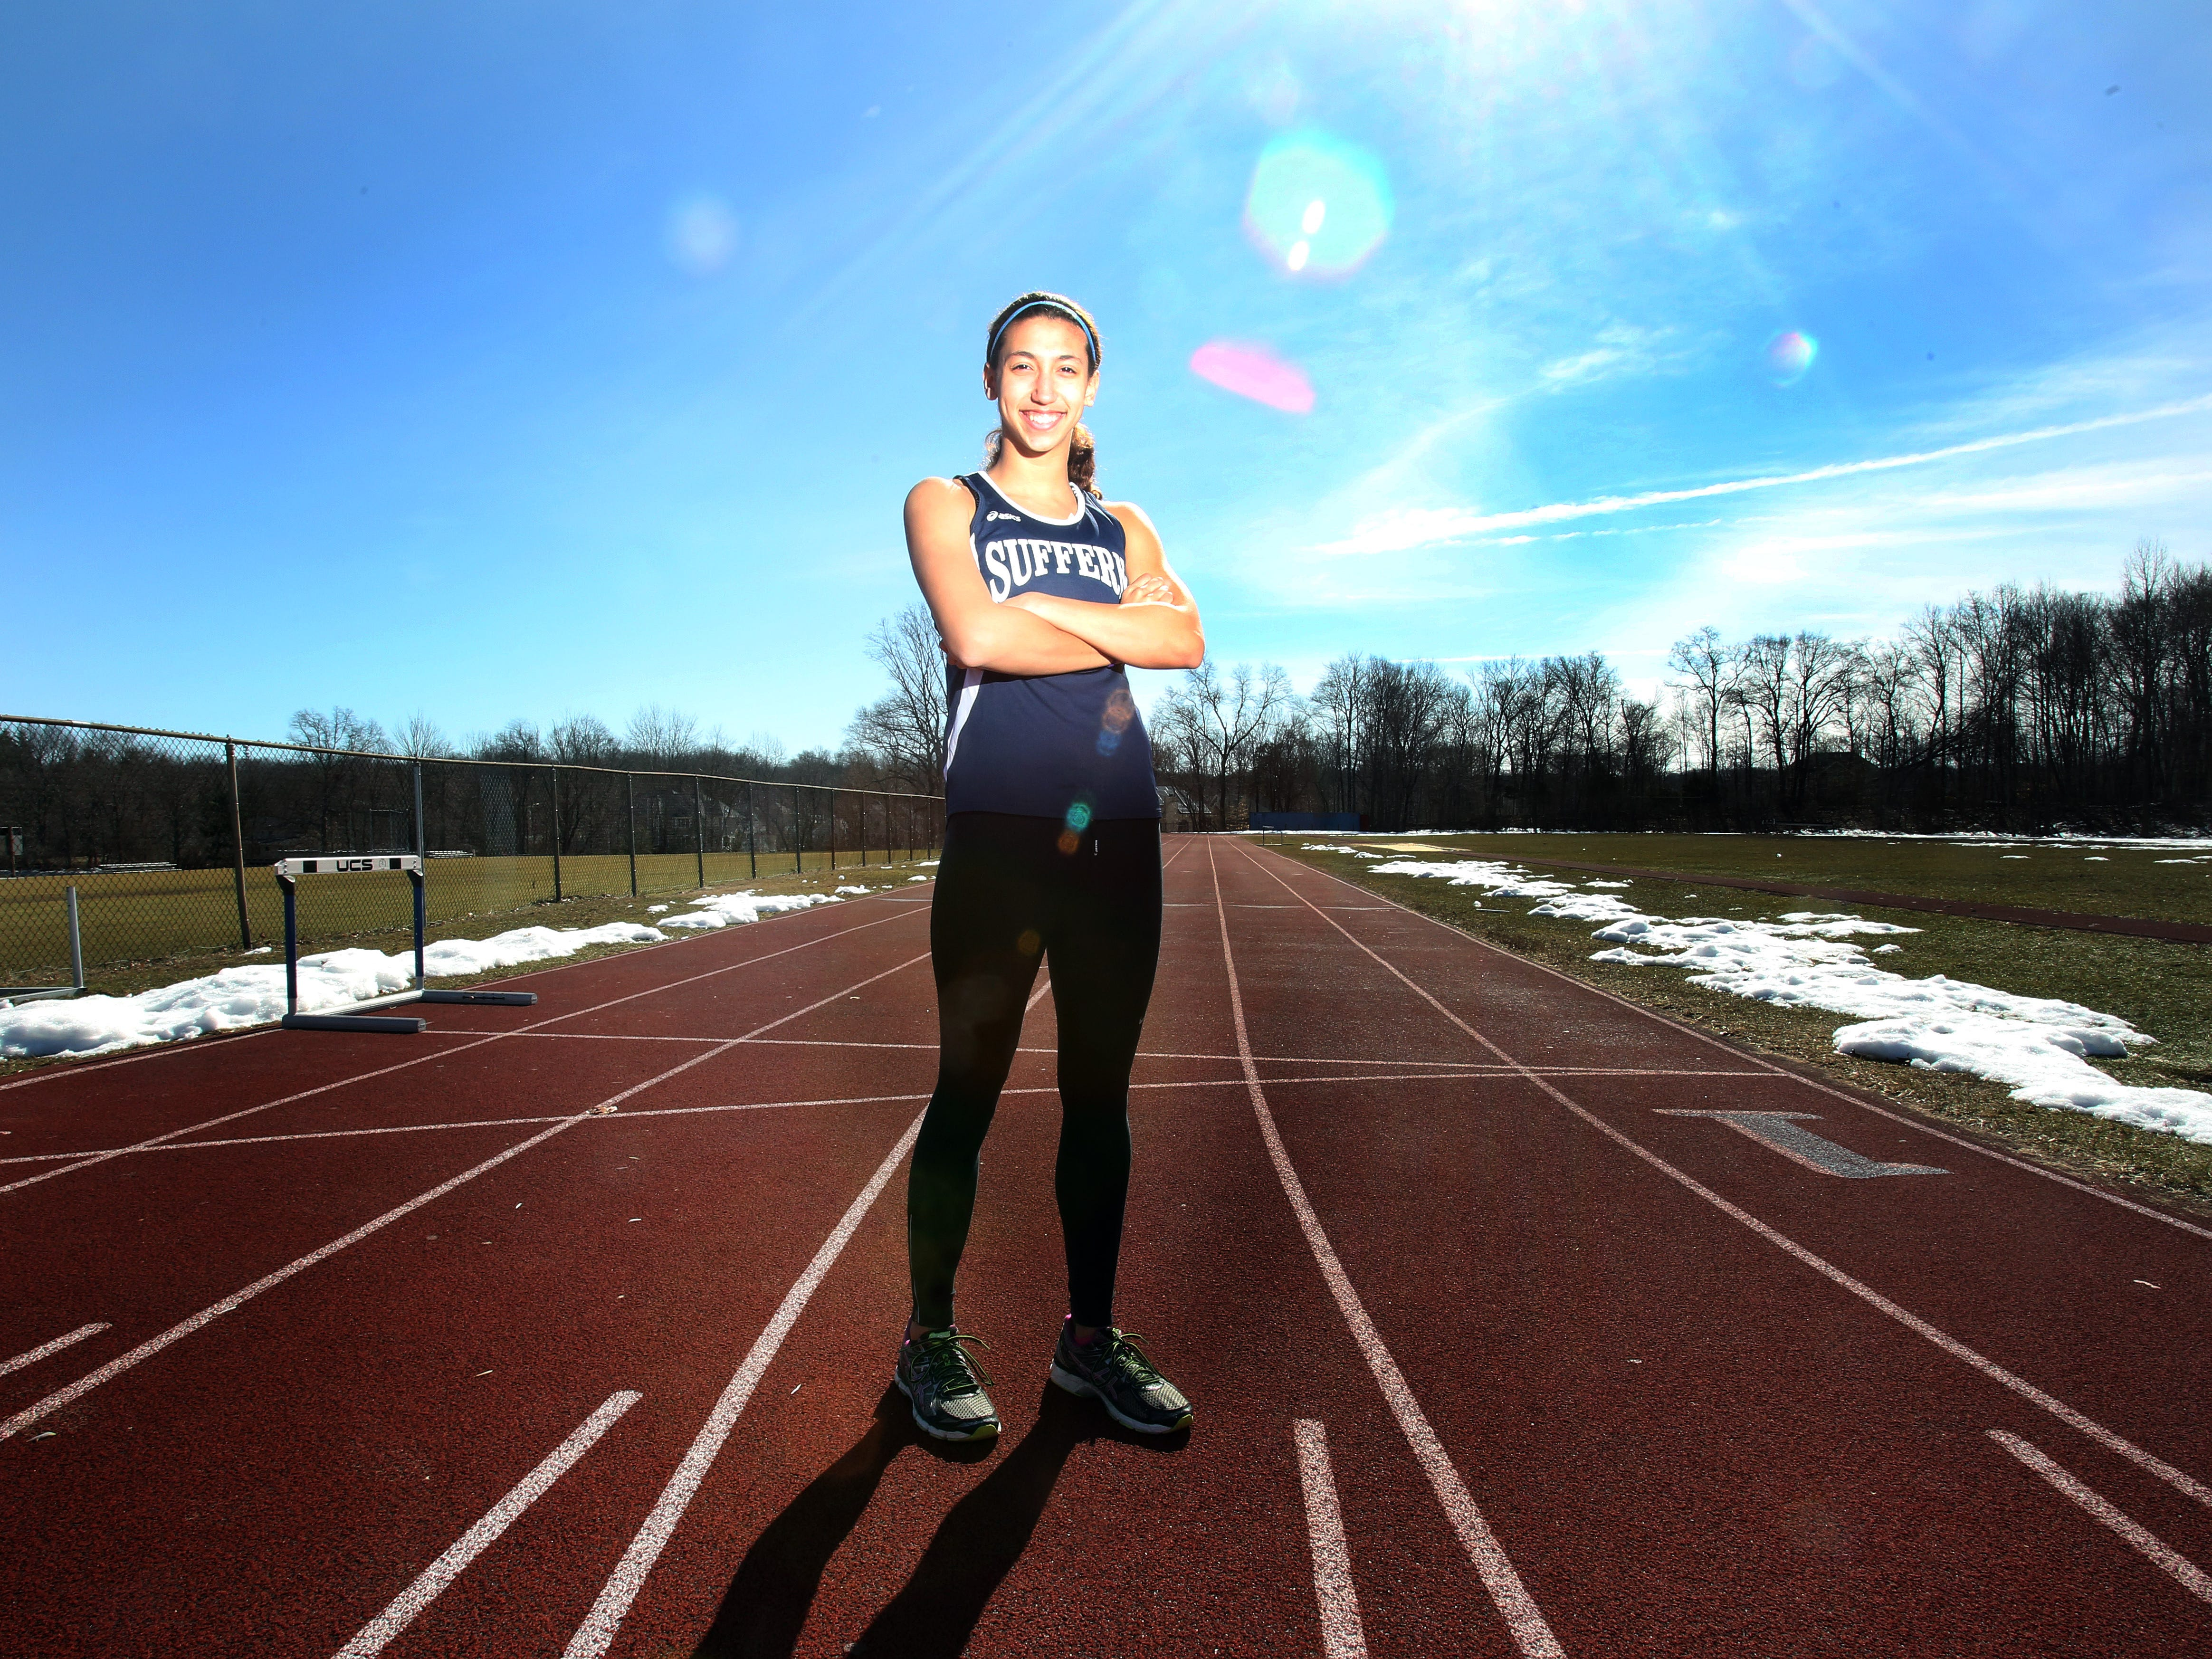 Kamryn McIntosh is the indoor track athlete of the year. McIntosh was photographed at Suffern High School March 19, 2015.